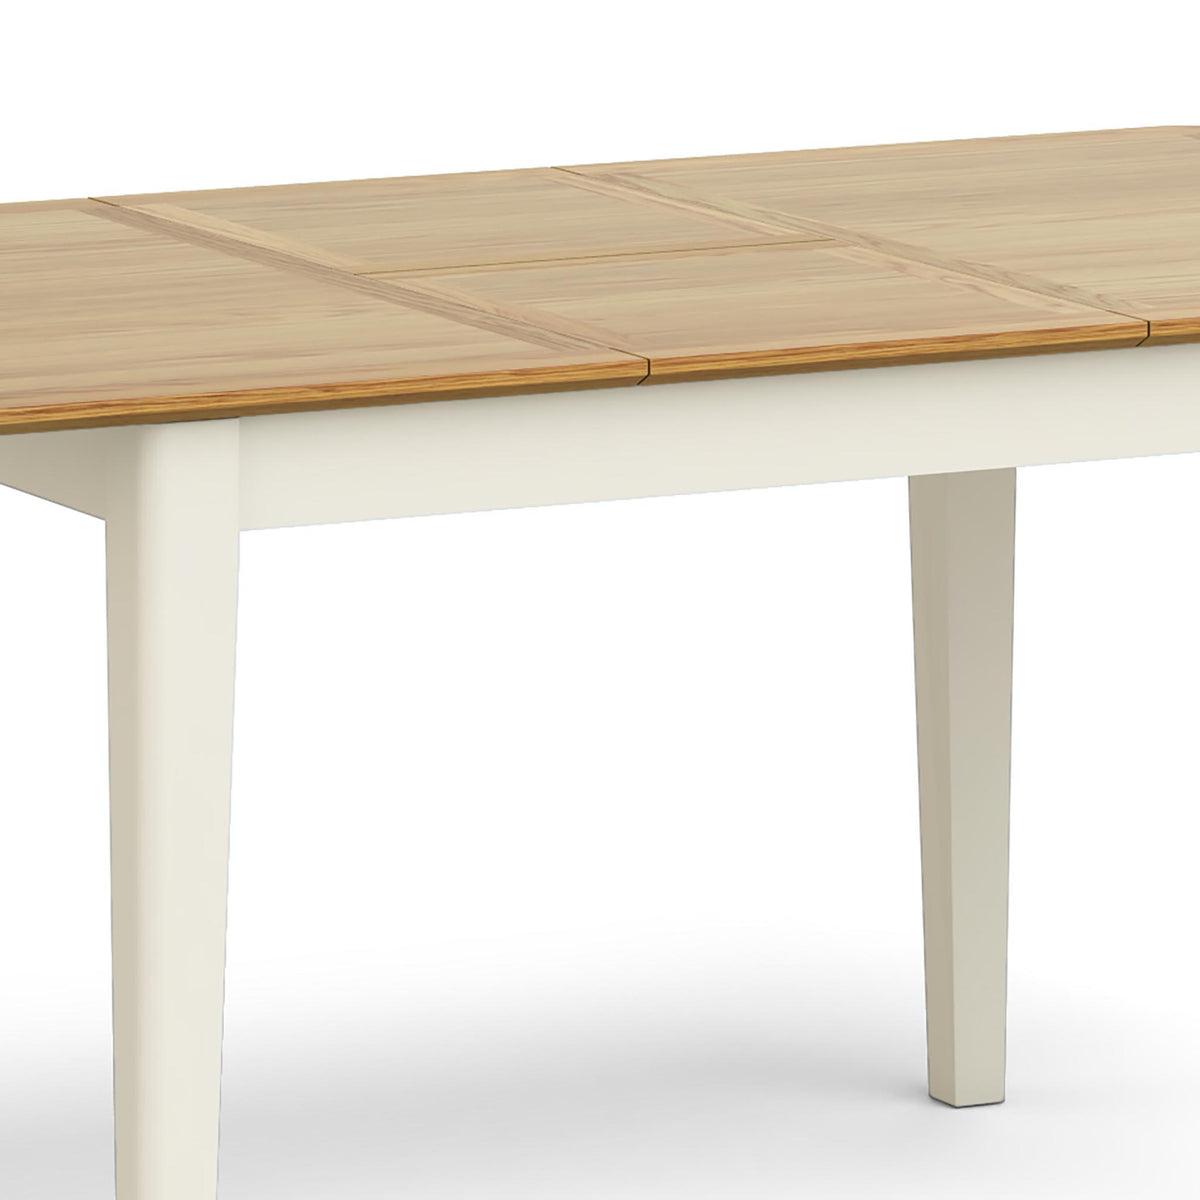 Windsor Cream Compact Extending Table - Close Up of Table Middle Extension  Section